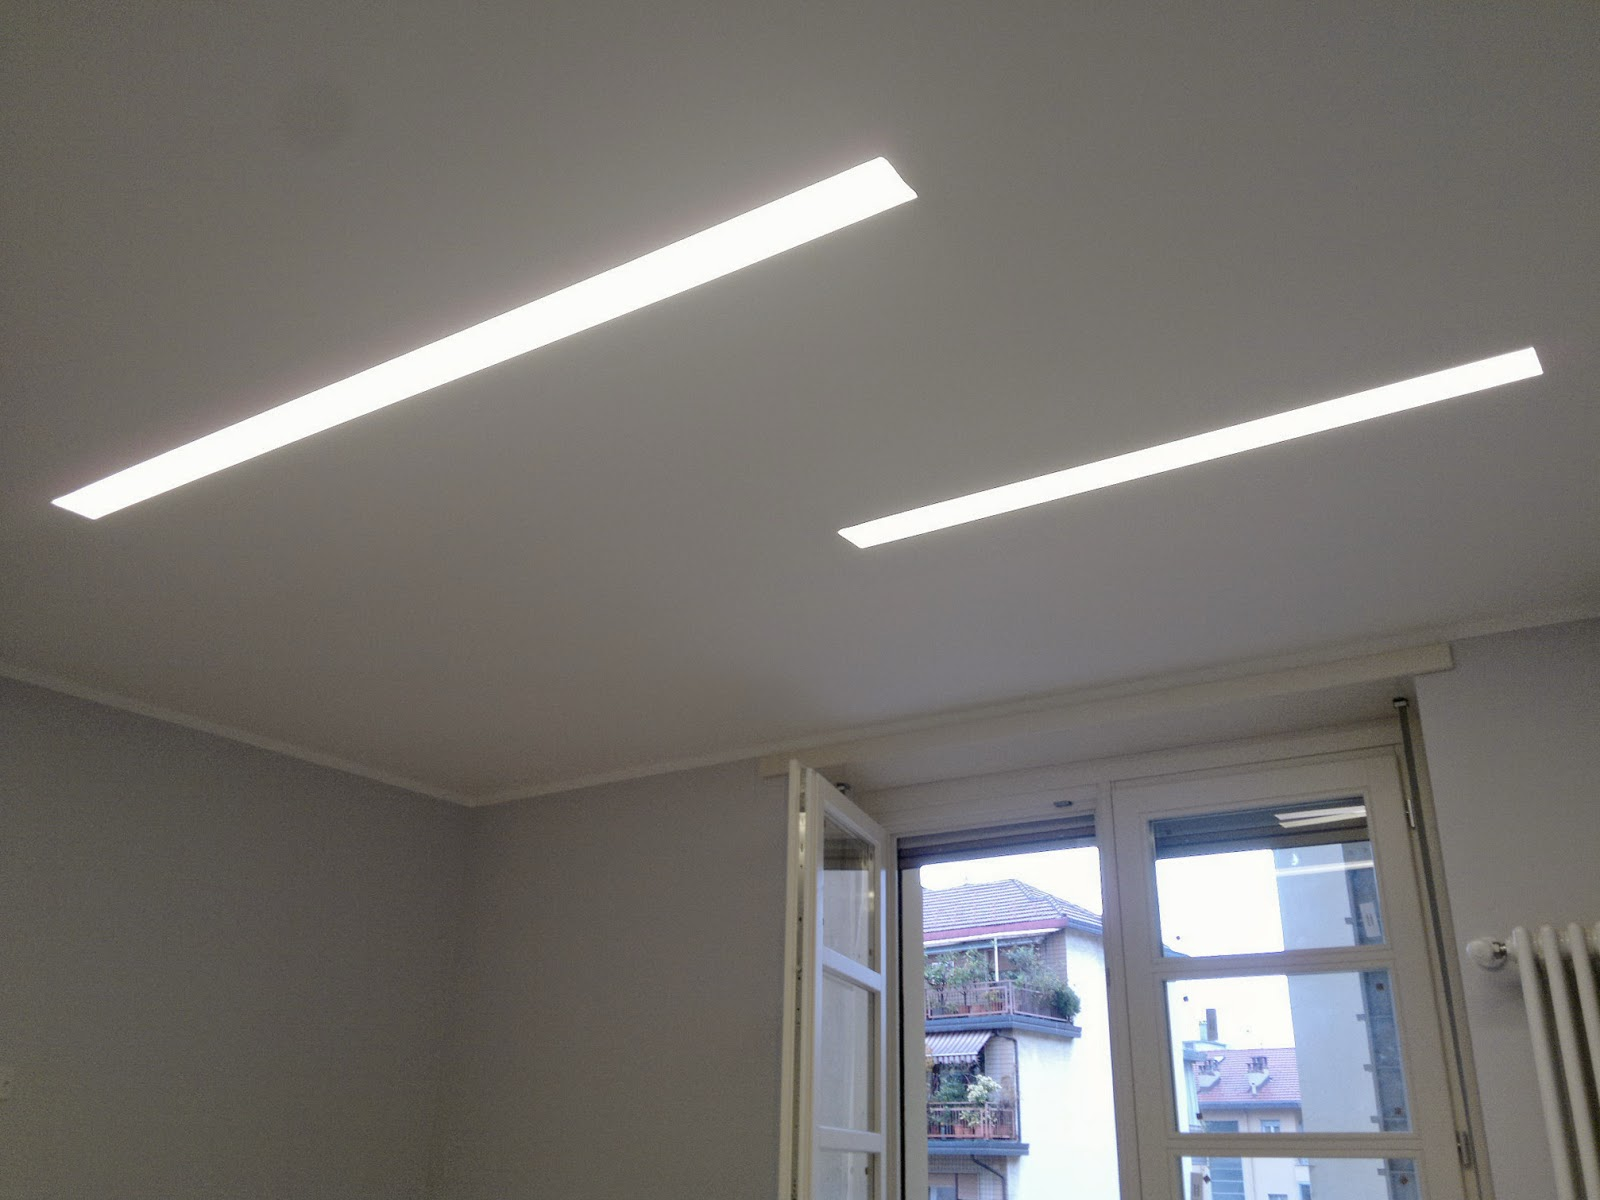 Luci a led per soffitto dz22 regardsdefemmes for Lampade a led casa